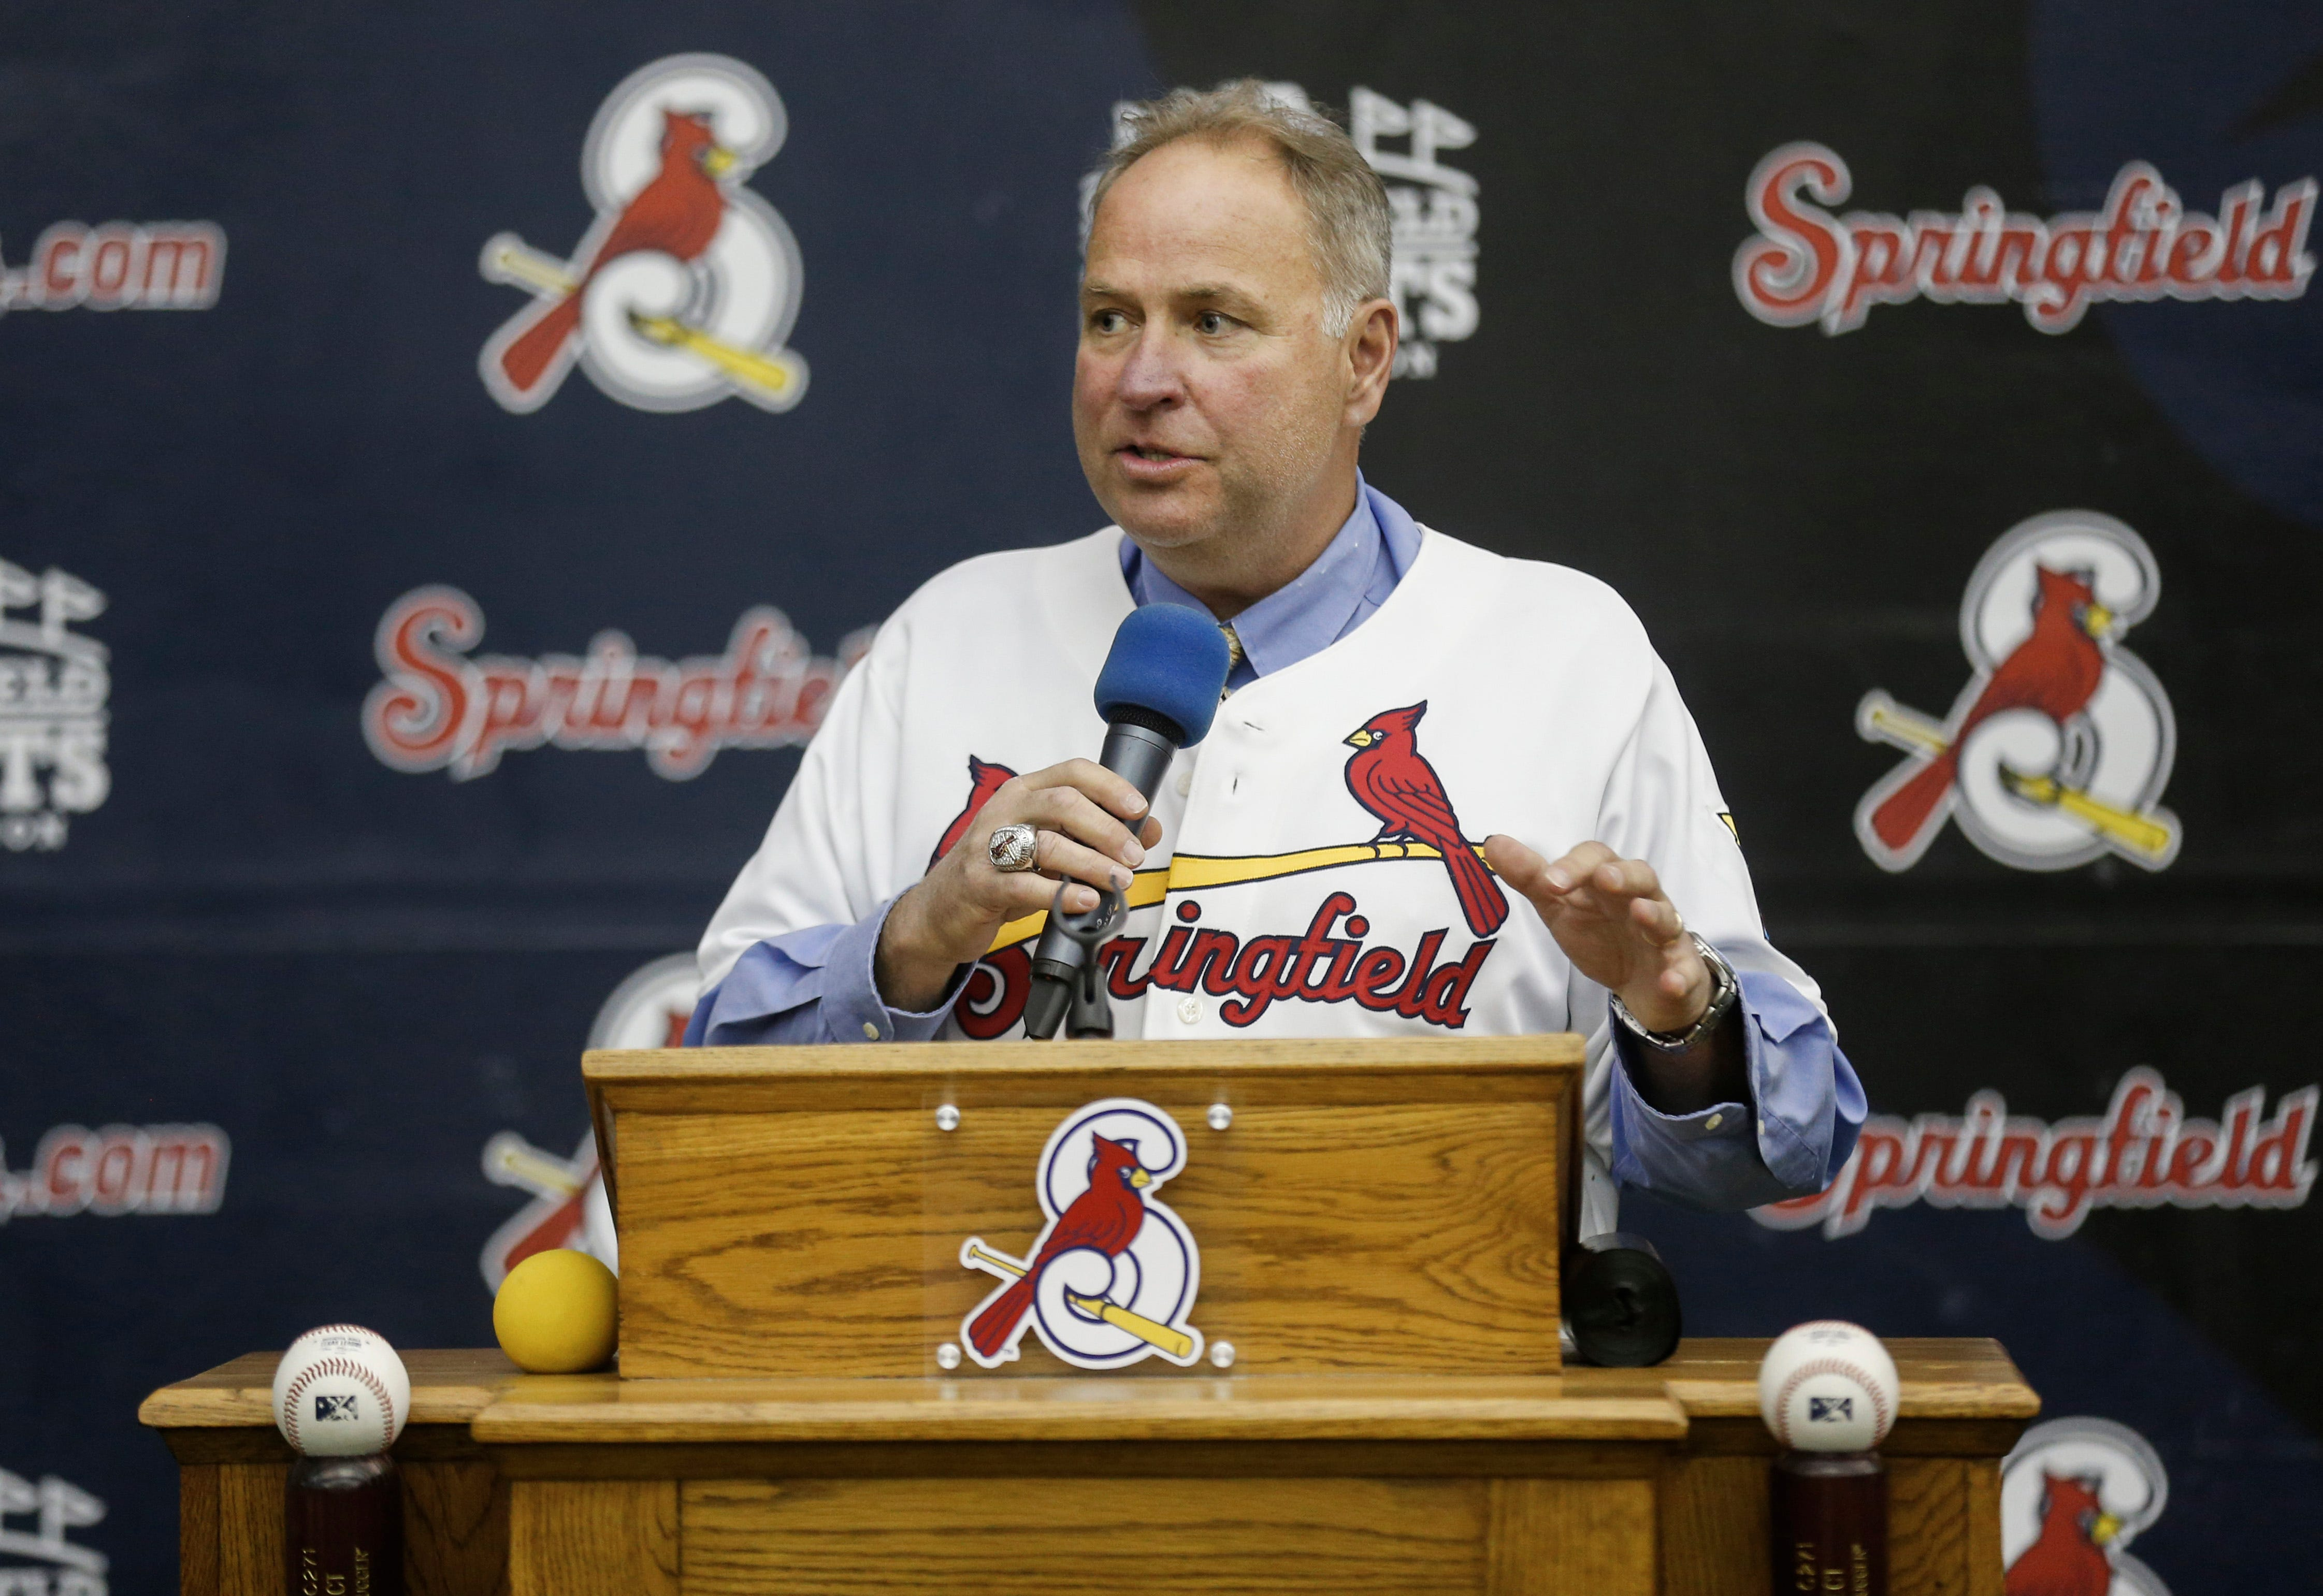 New Springfield Cardinals Manager Joe Kruzel speaks after being introduced on Thursday, Feb. 7, 2019.